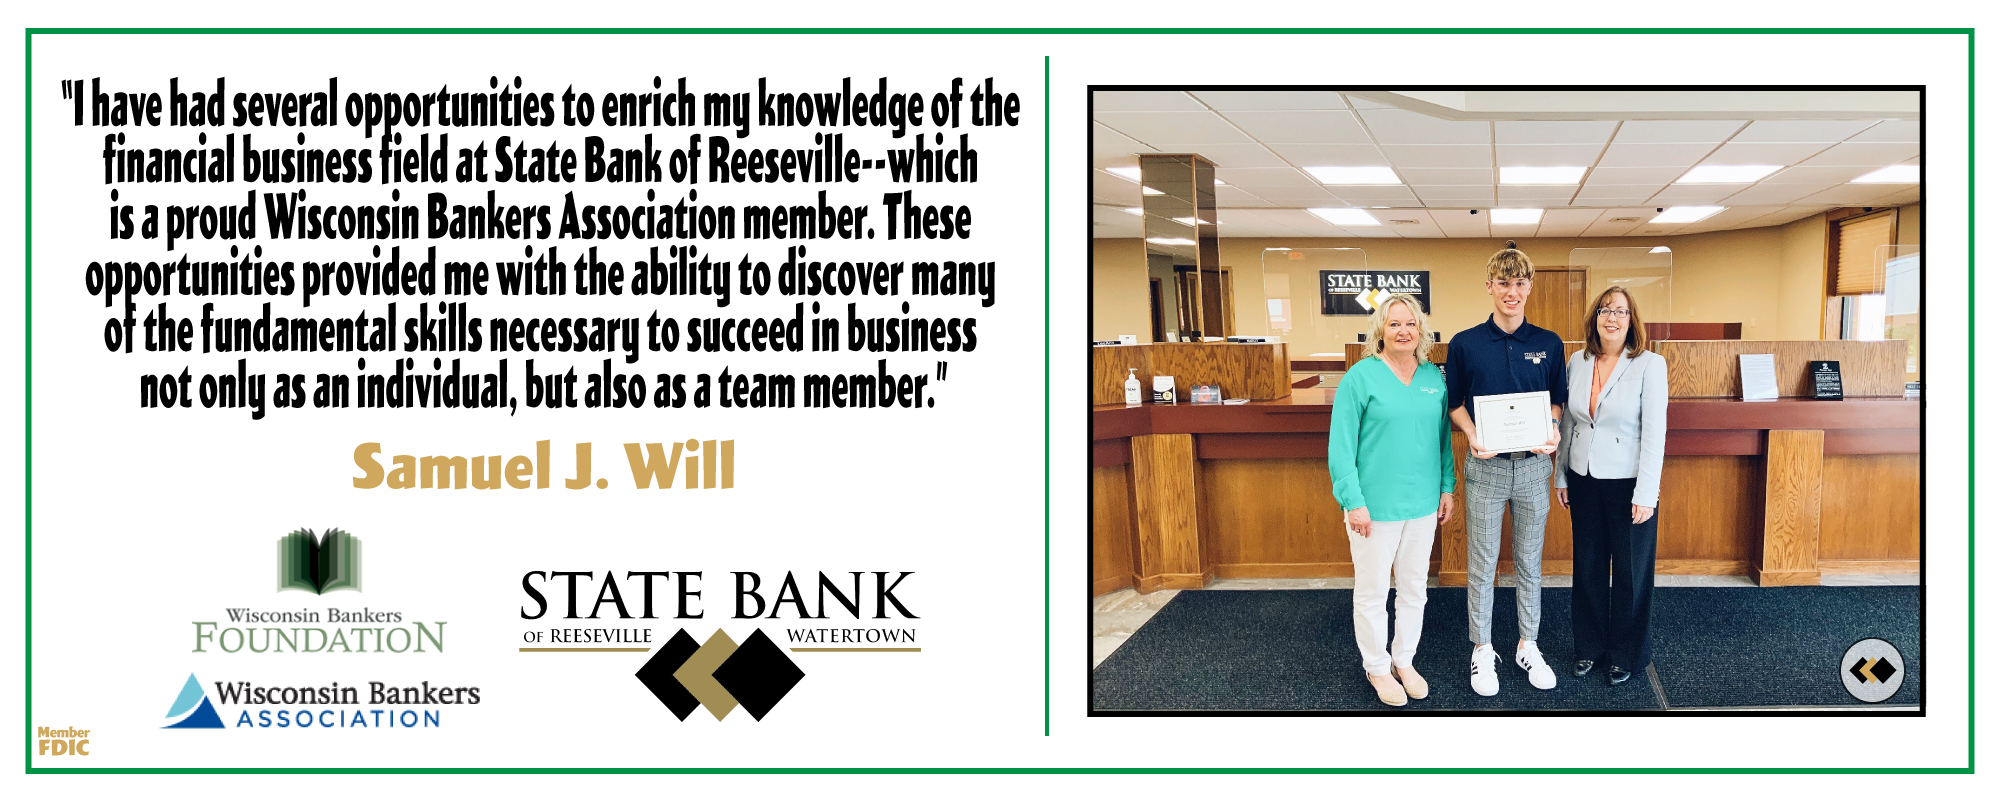 State Bank of Reeseville Employee Awarded WBF Scholarship. Rose Oswald Poels of the Wisconsin Bankers Association presented Samuel Will of State Bank with the 2021 Wisconsin Bankers Foundation Scholarship on June 17, 2021 at the Reeseville location.